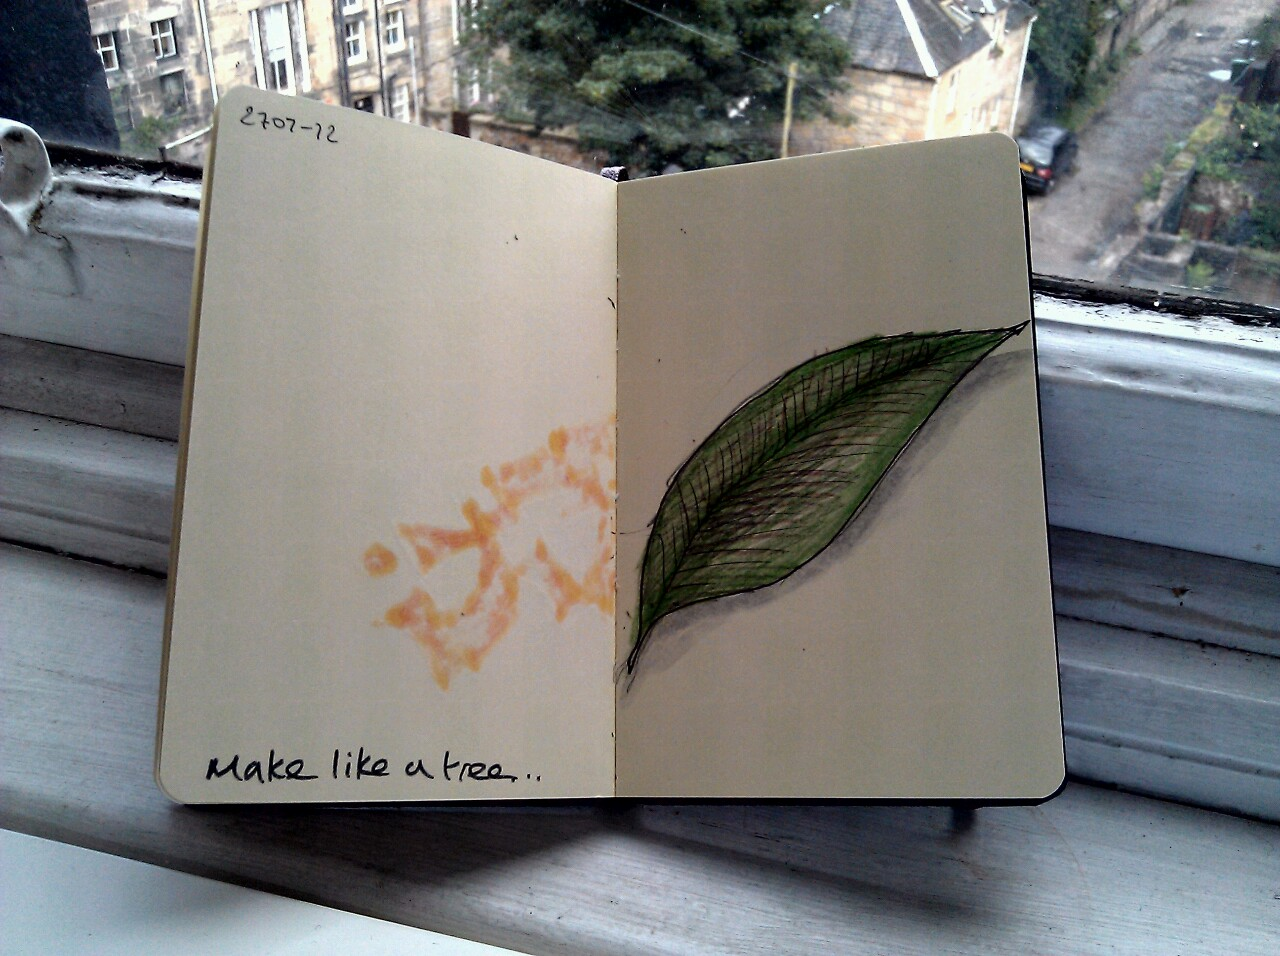 365 drawings later … day 178 … make like a tree [and leave]